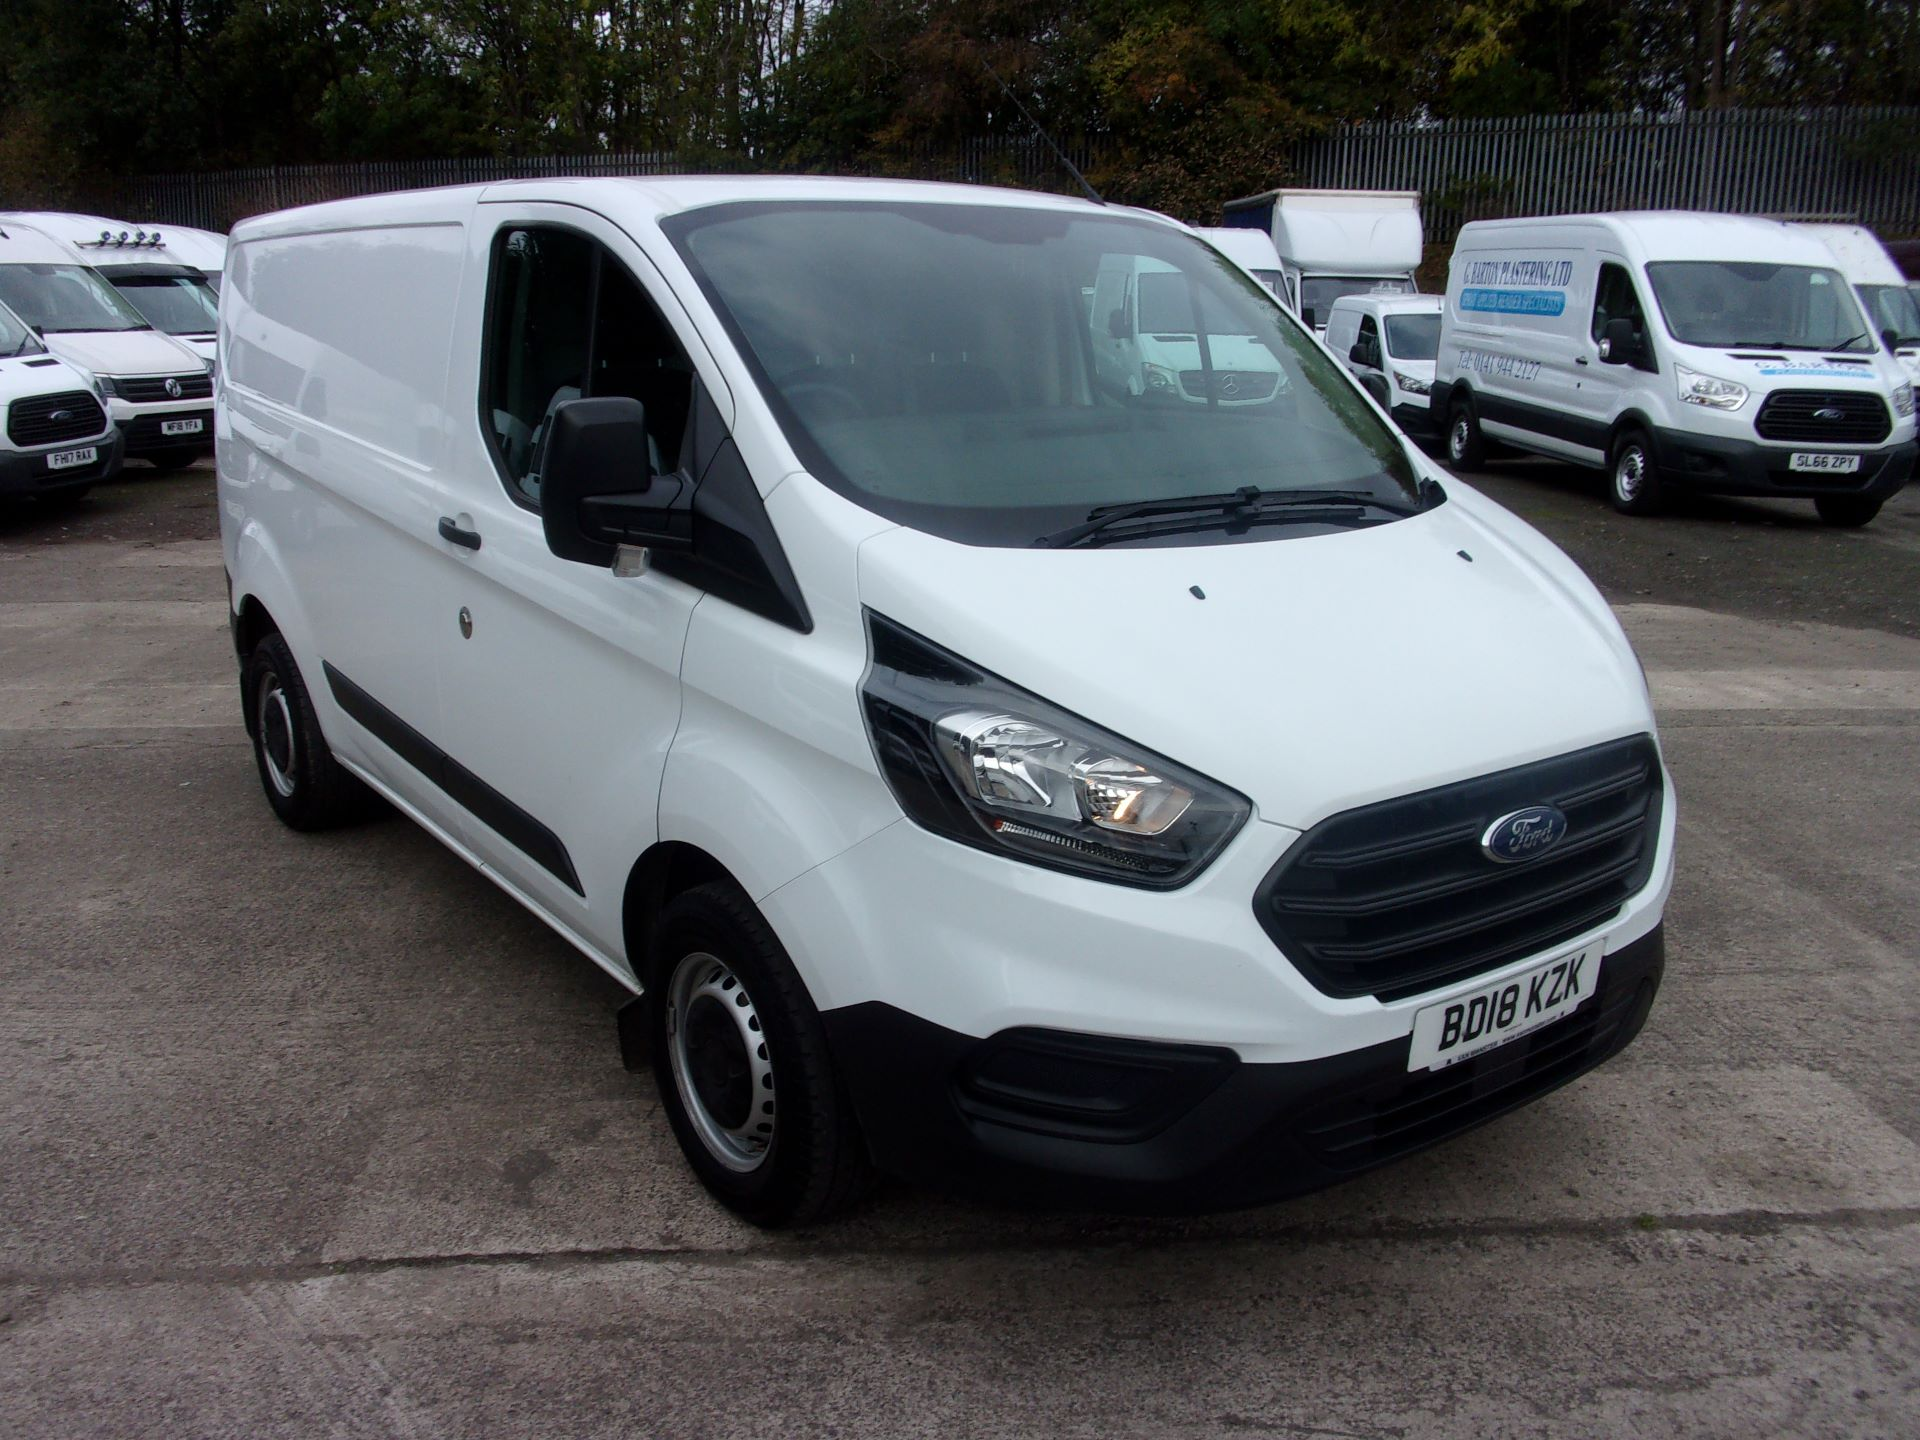 2018 Ford Transit Custom 300 L1 DIESEL FWD 2.0 TDCI 105PS LOW ROOF EURO 6 (BD18KZK)